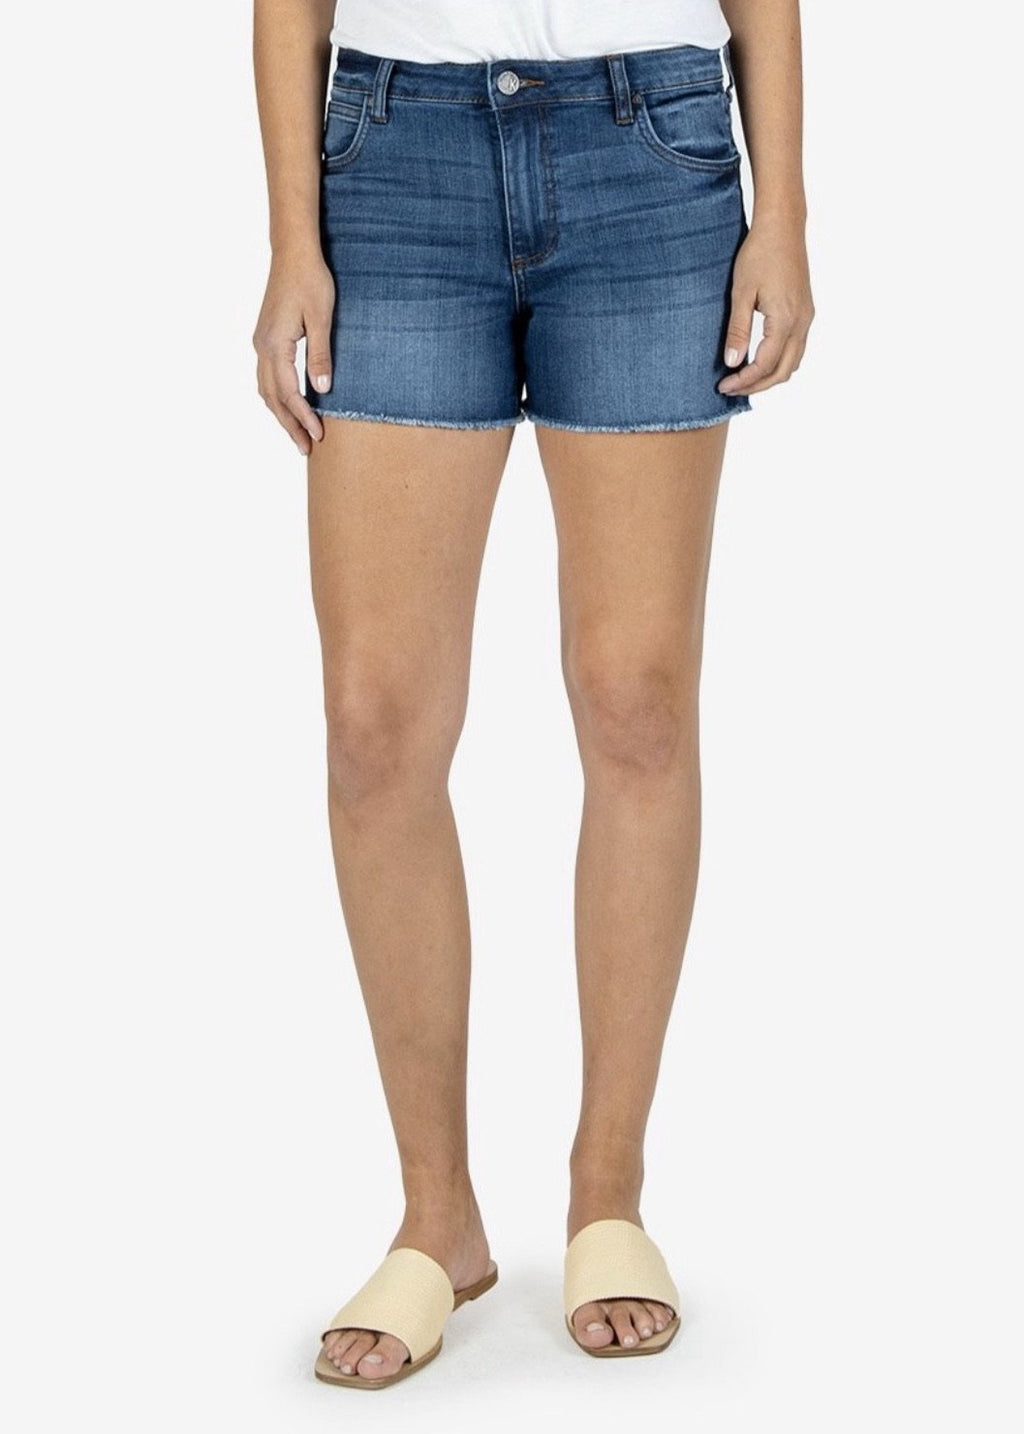 CITY CHIC SHORTS